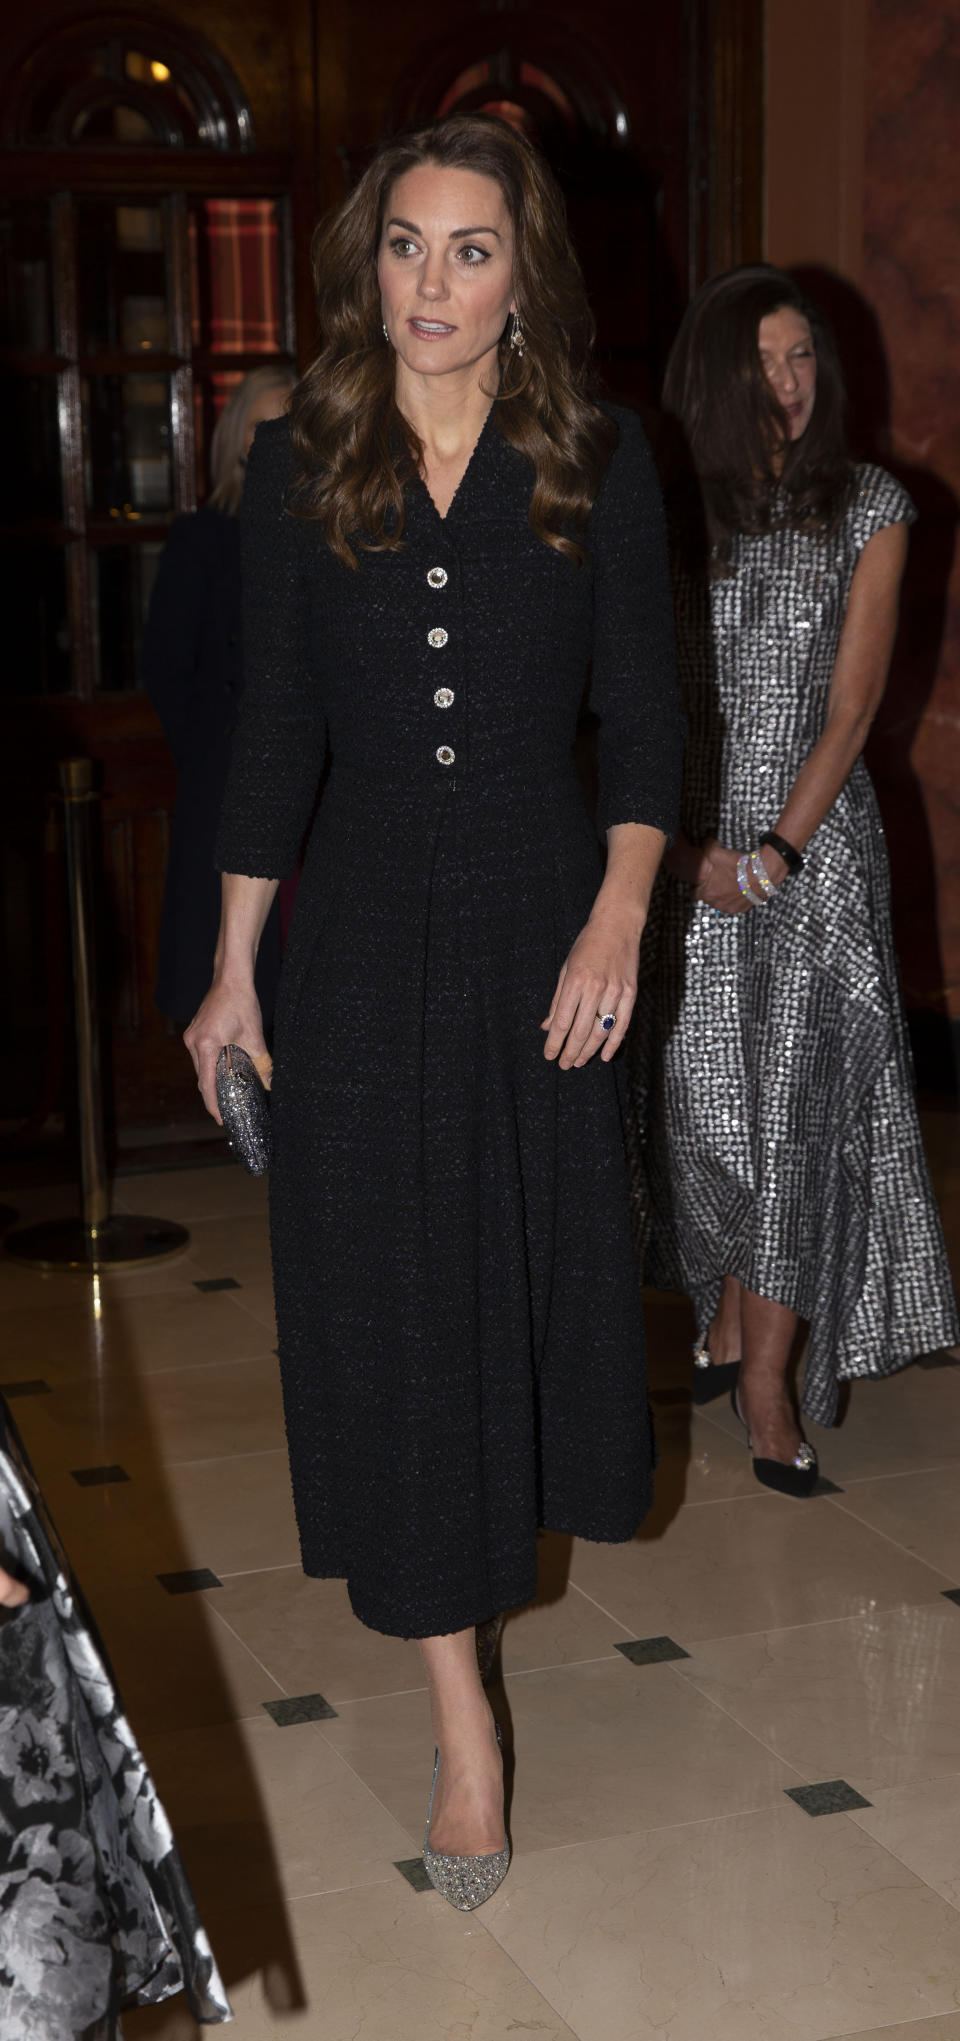 The Duchess of Cambridge attends a special performance of Dear Evan Hansen, at the Noel Coward Theatre in London.